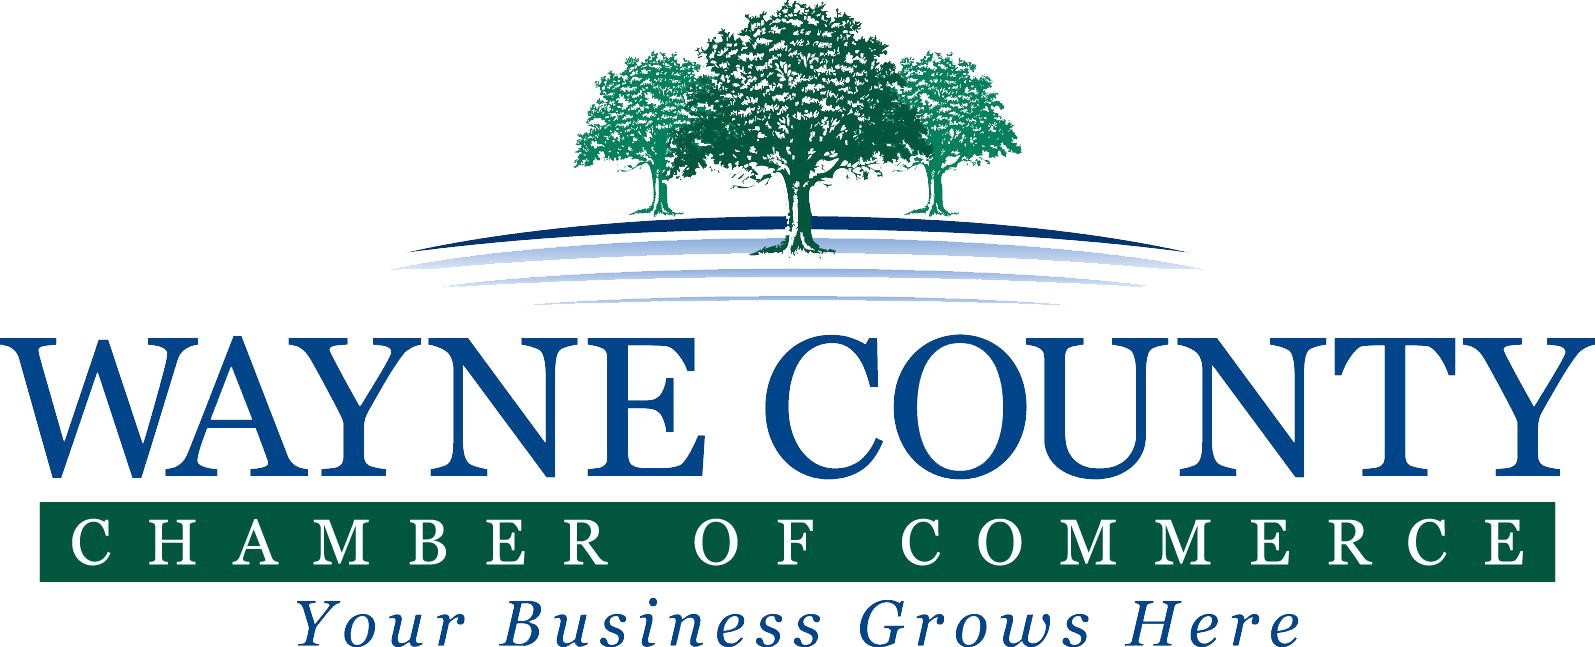 Wayne County Chamber of Commerce - Attractions